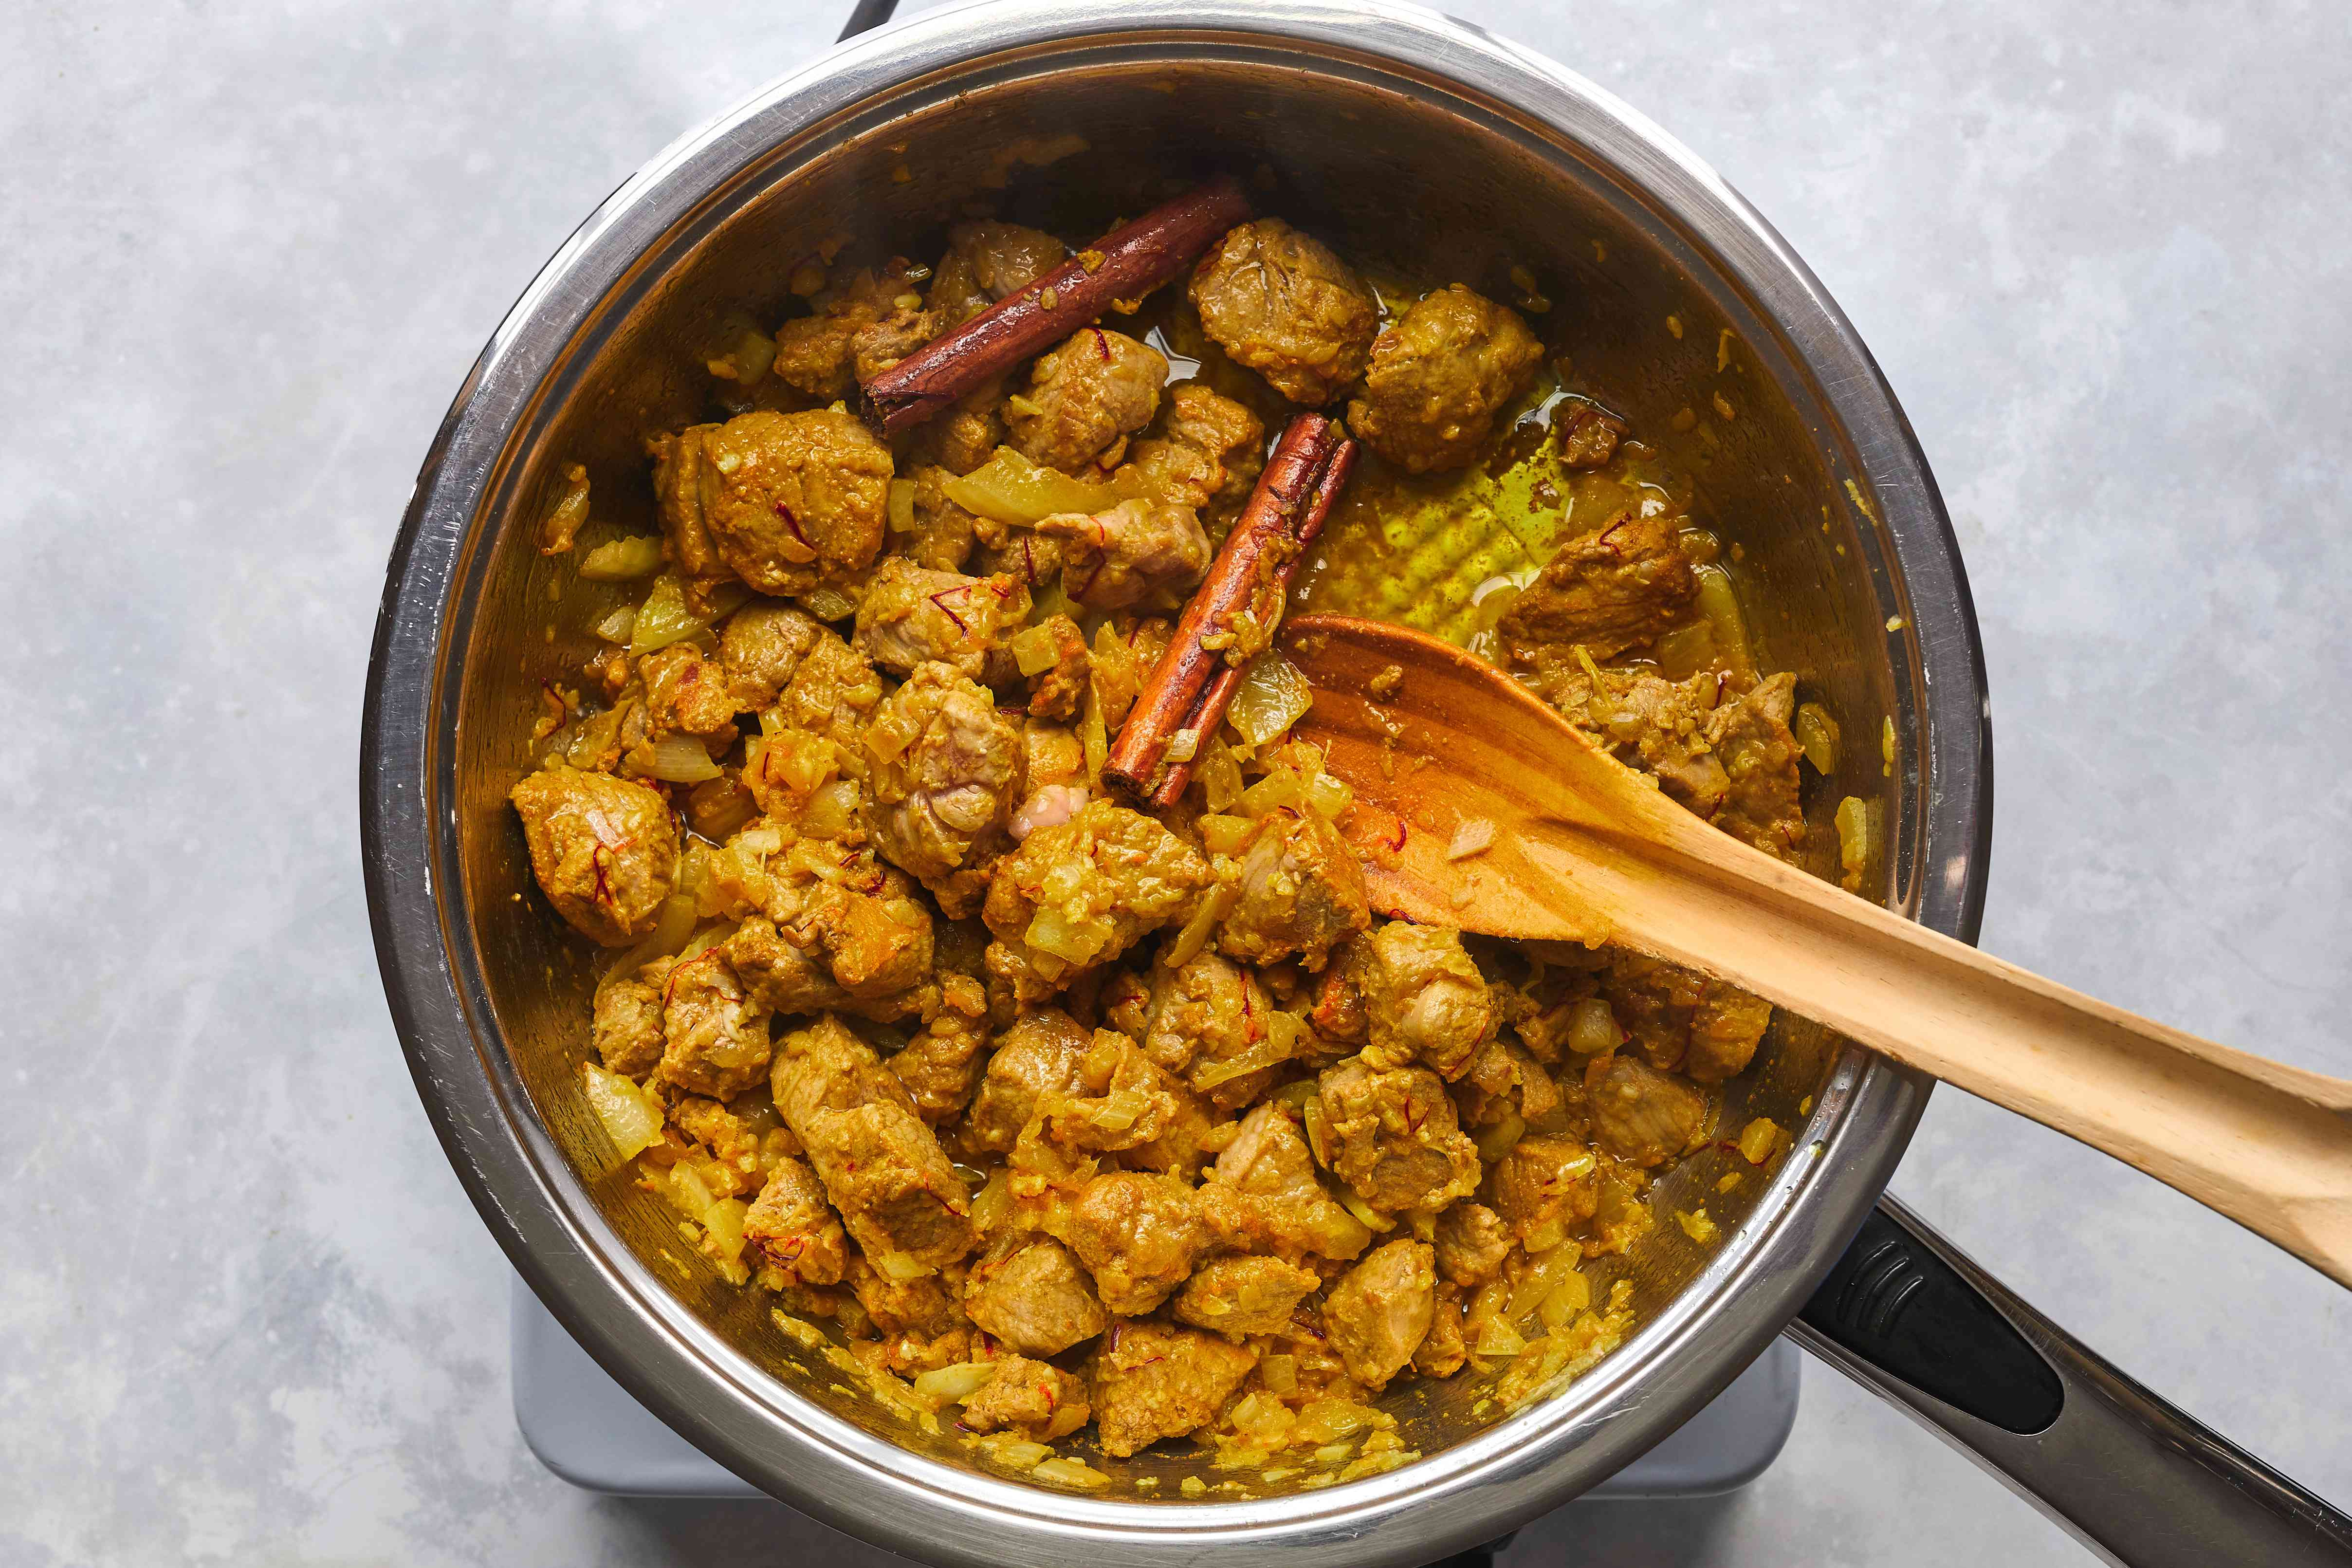 meat with onions, garlic, and spices cooking in a pot